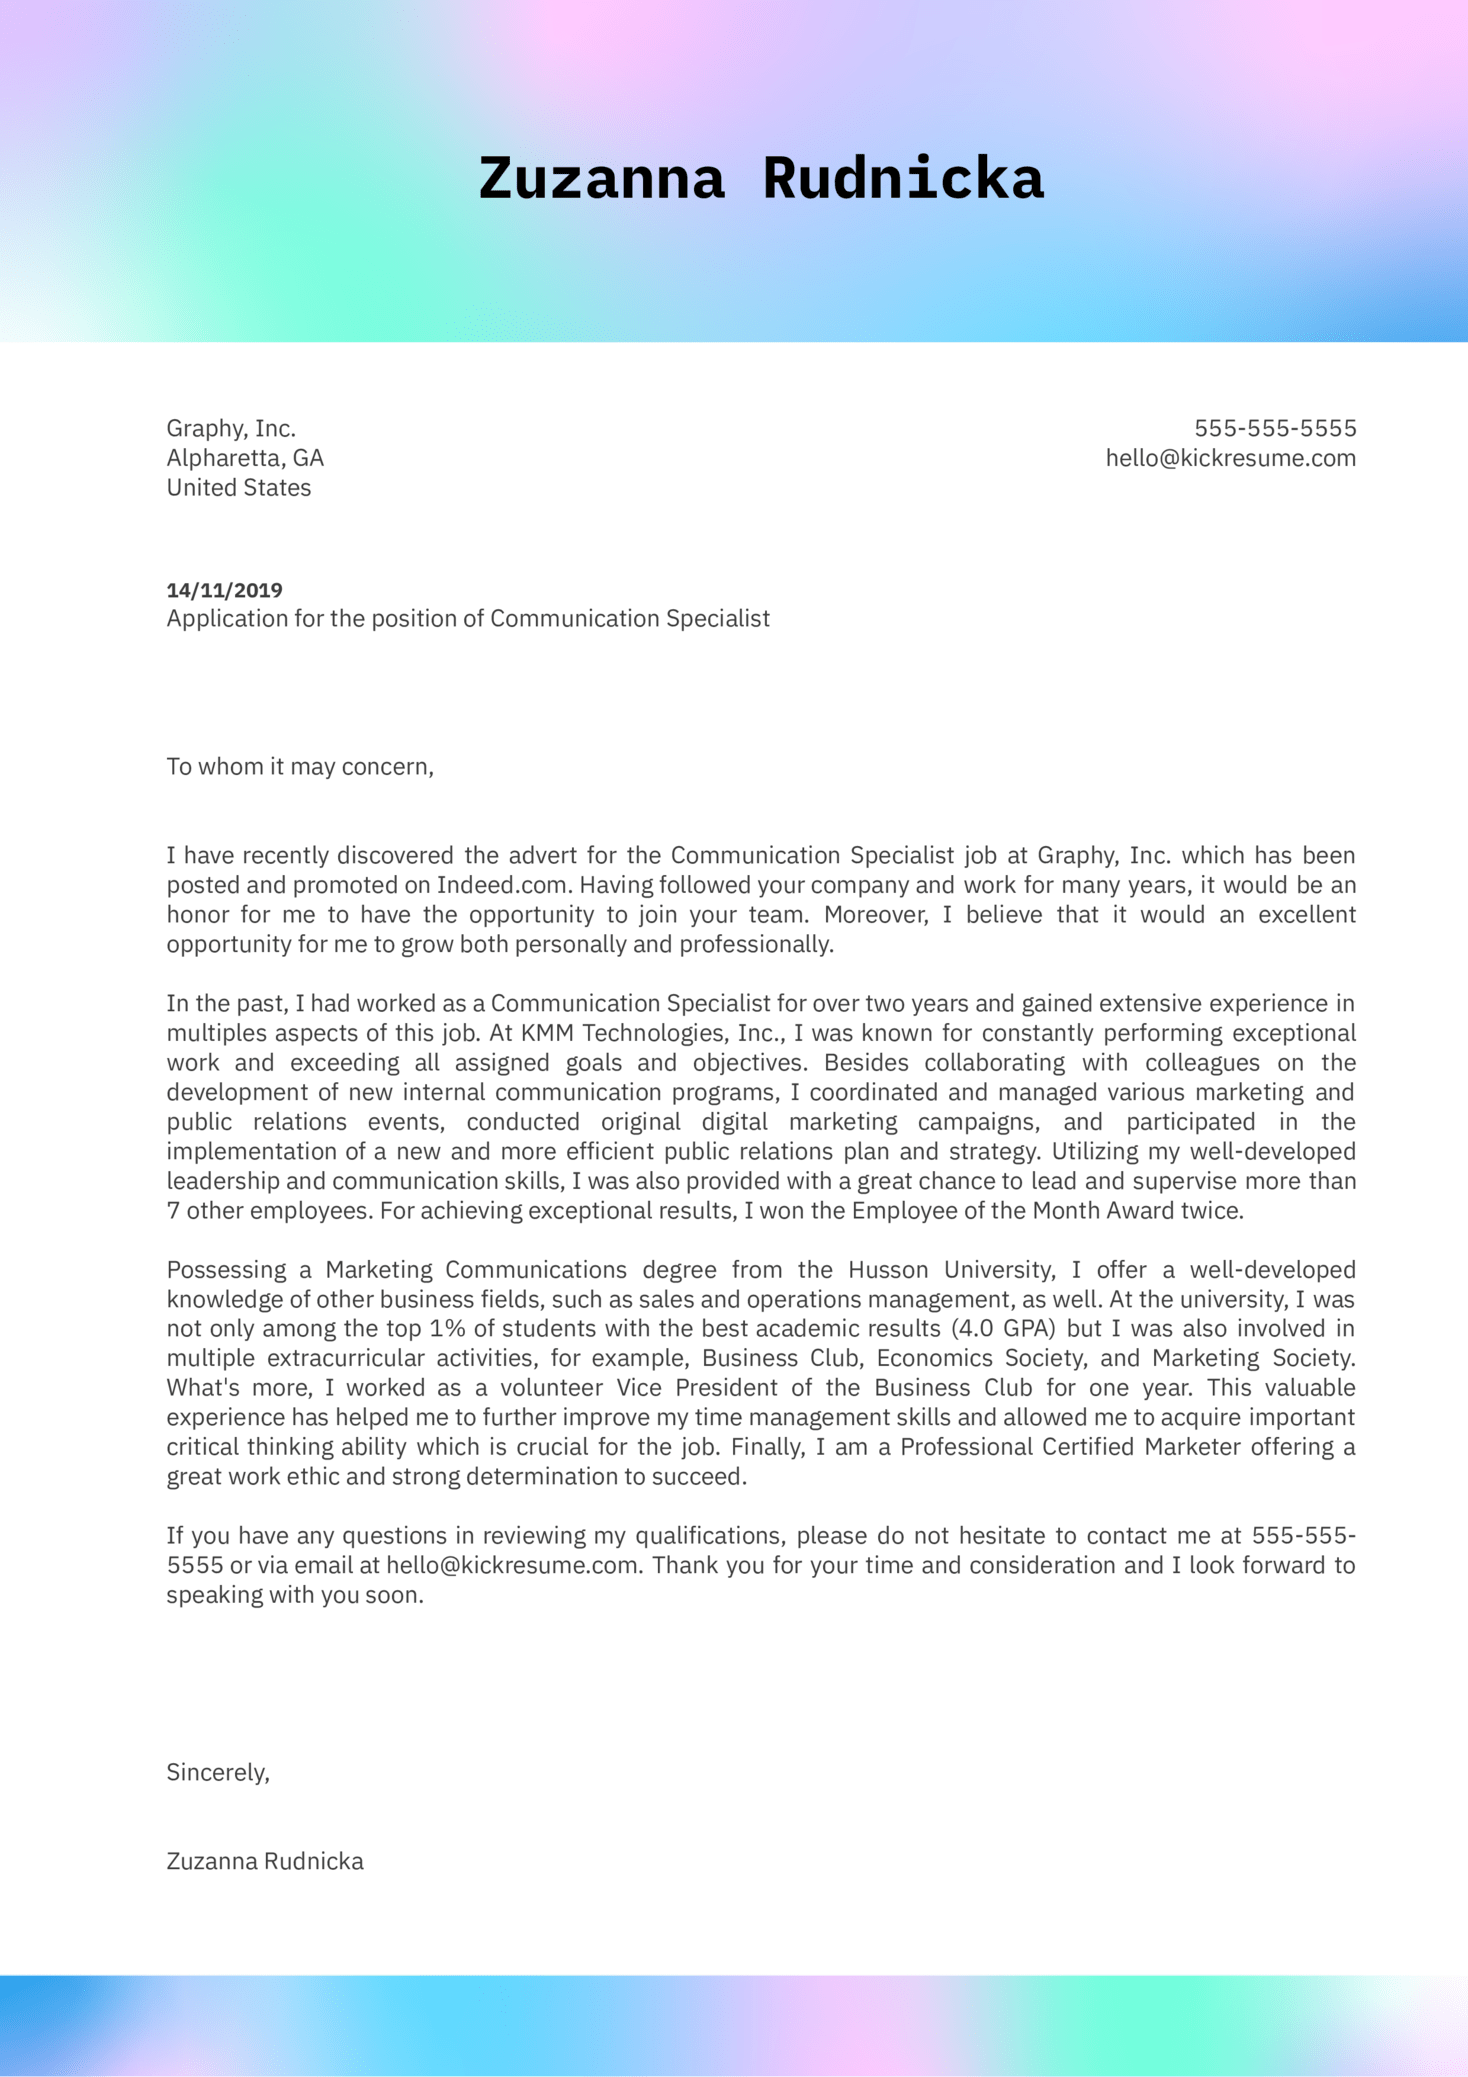 Communication Specialist Cover Letter Sample Kickresume